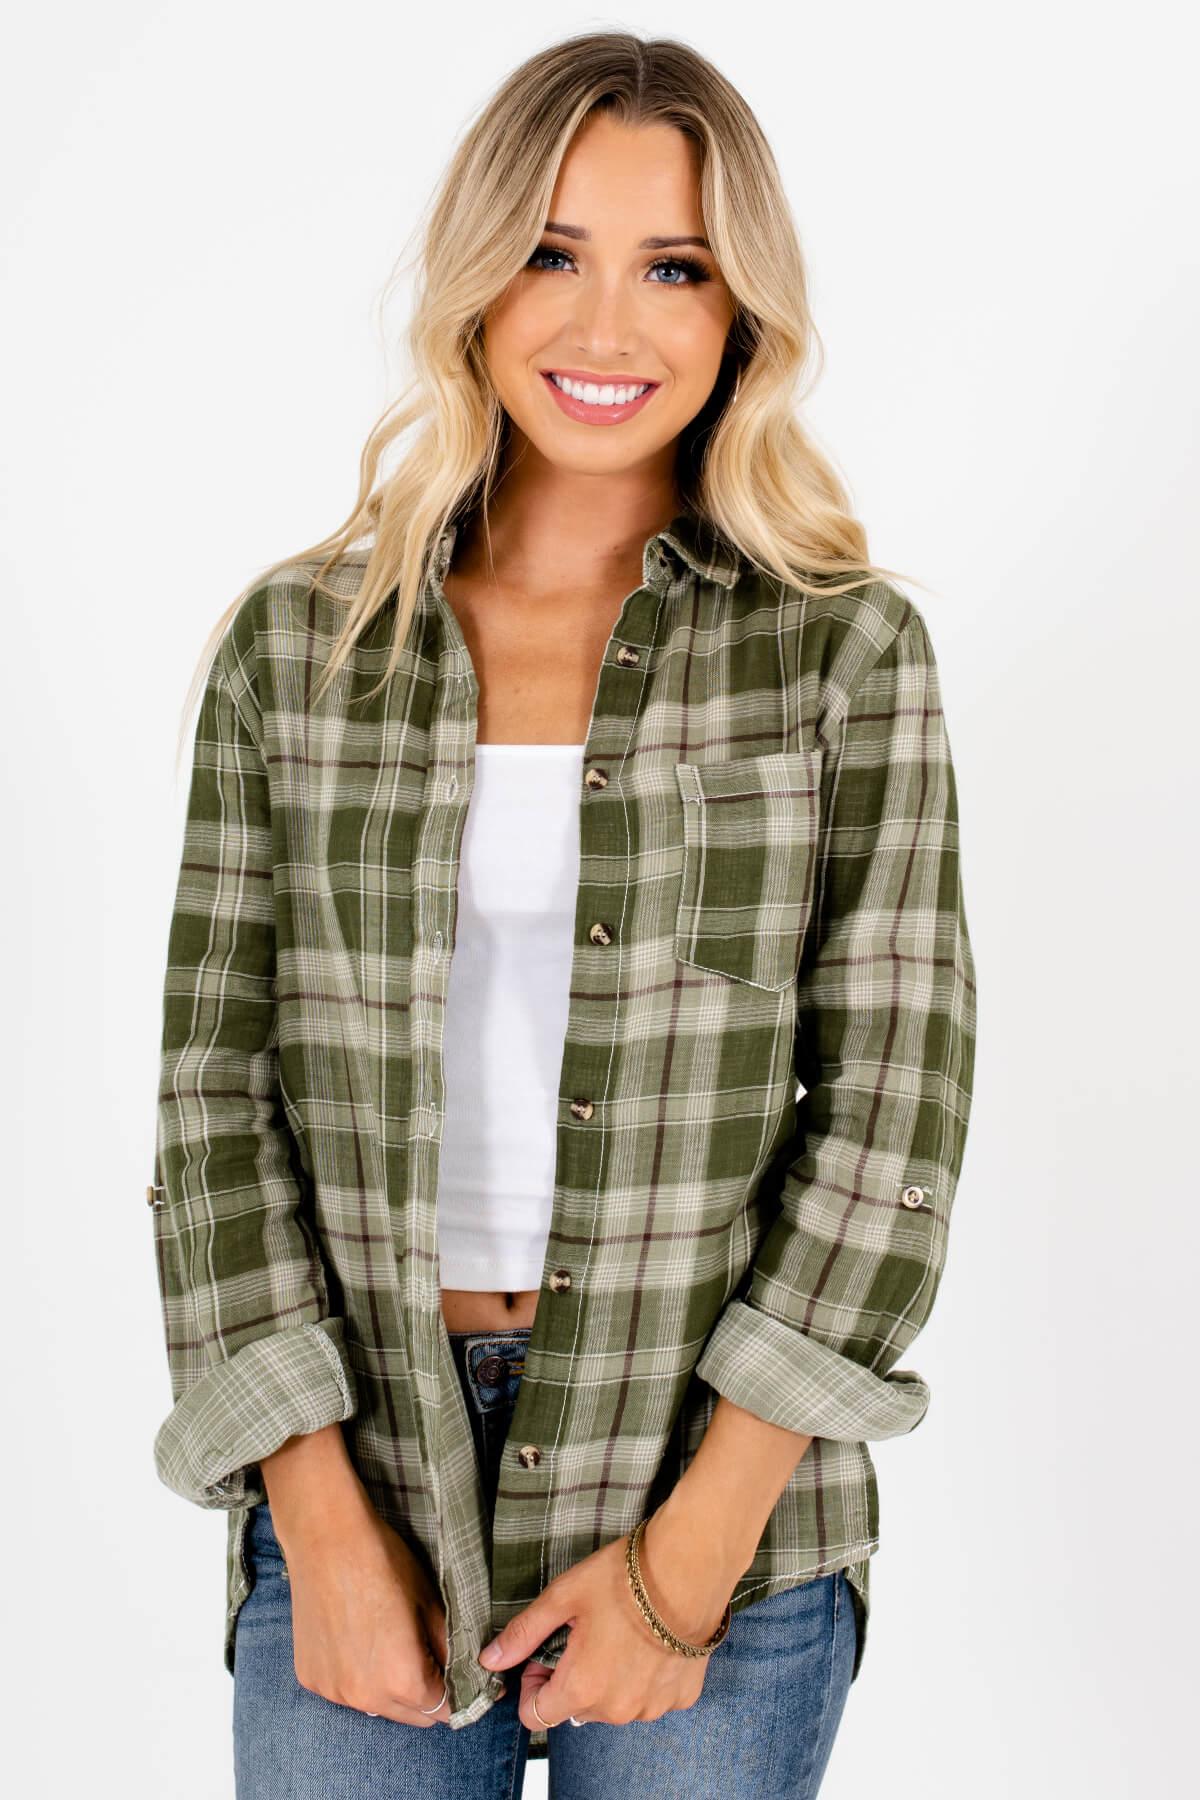 Green White and Brown Plaid Patterned Boutique Tops for Women